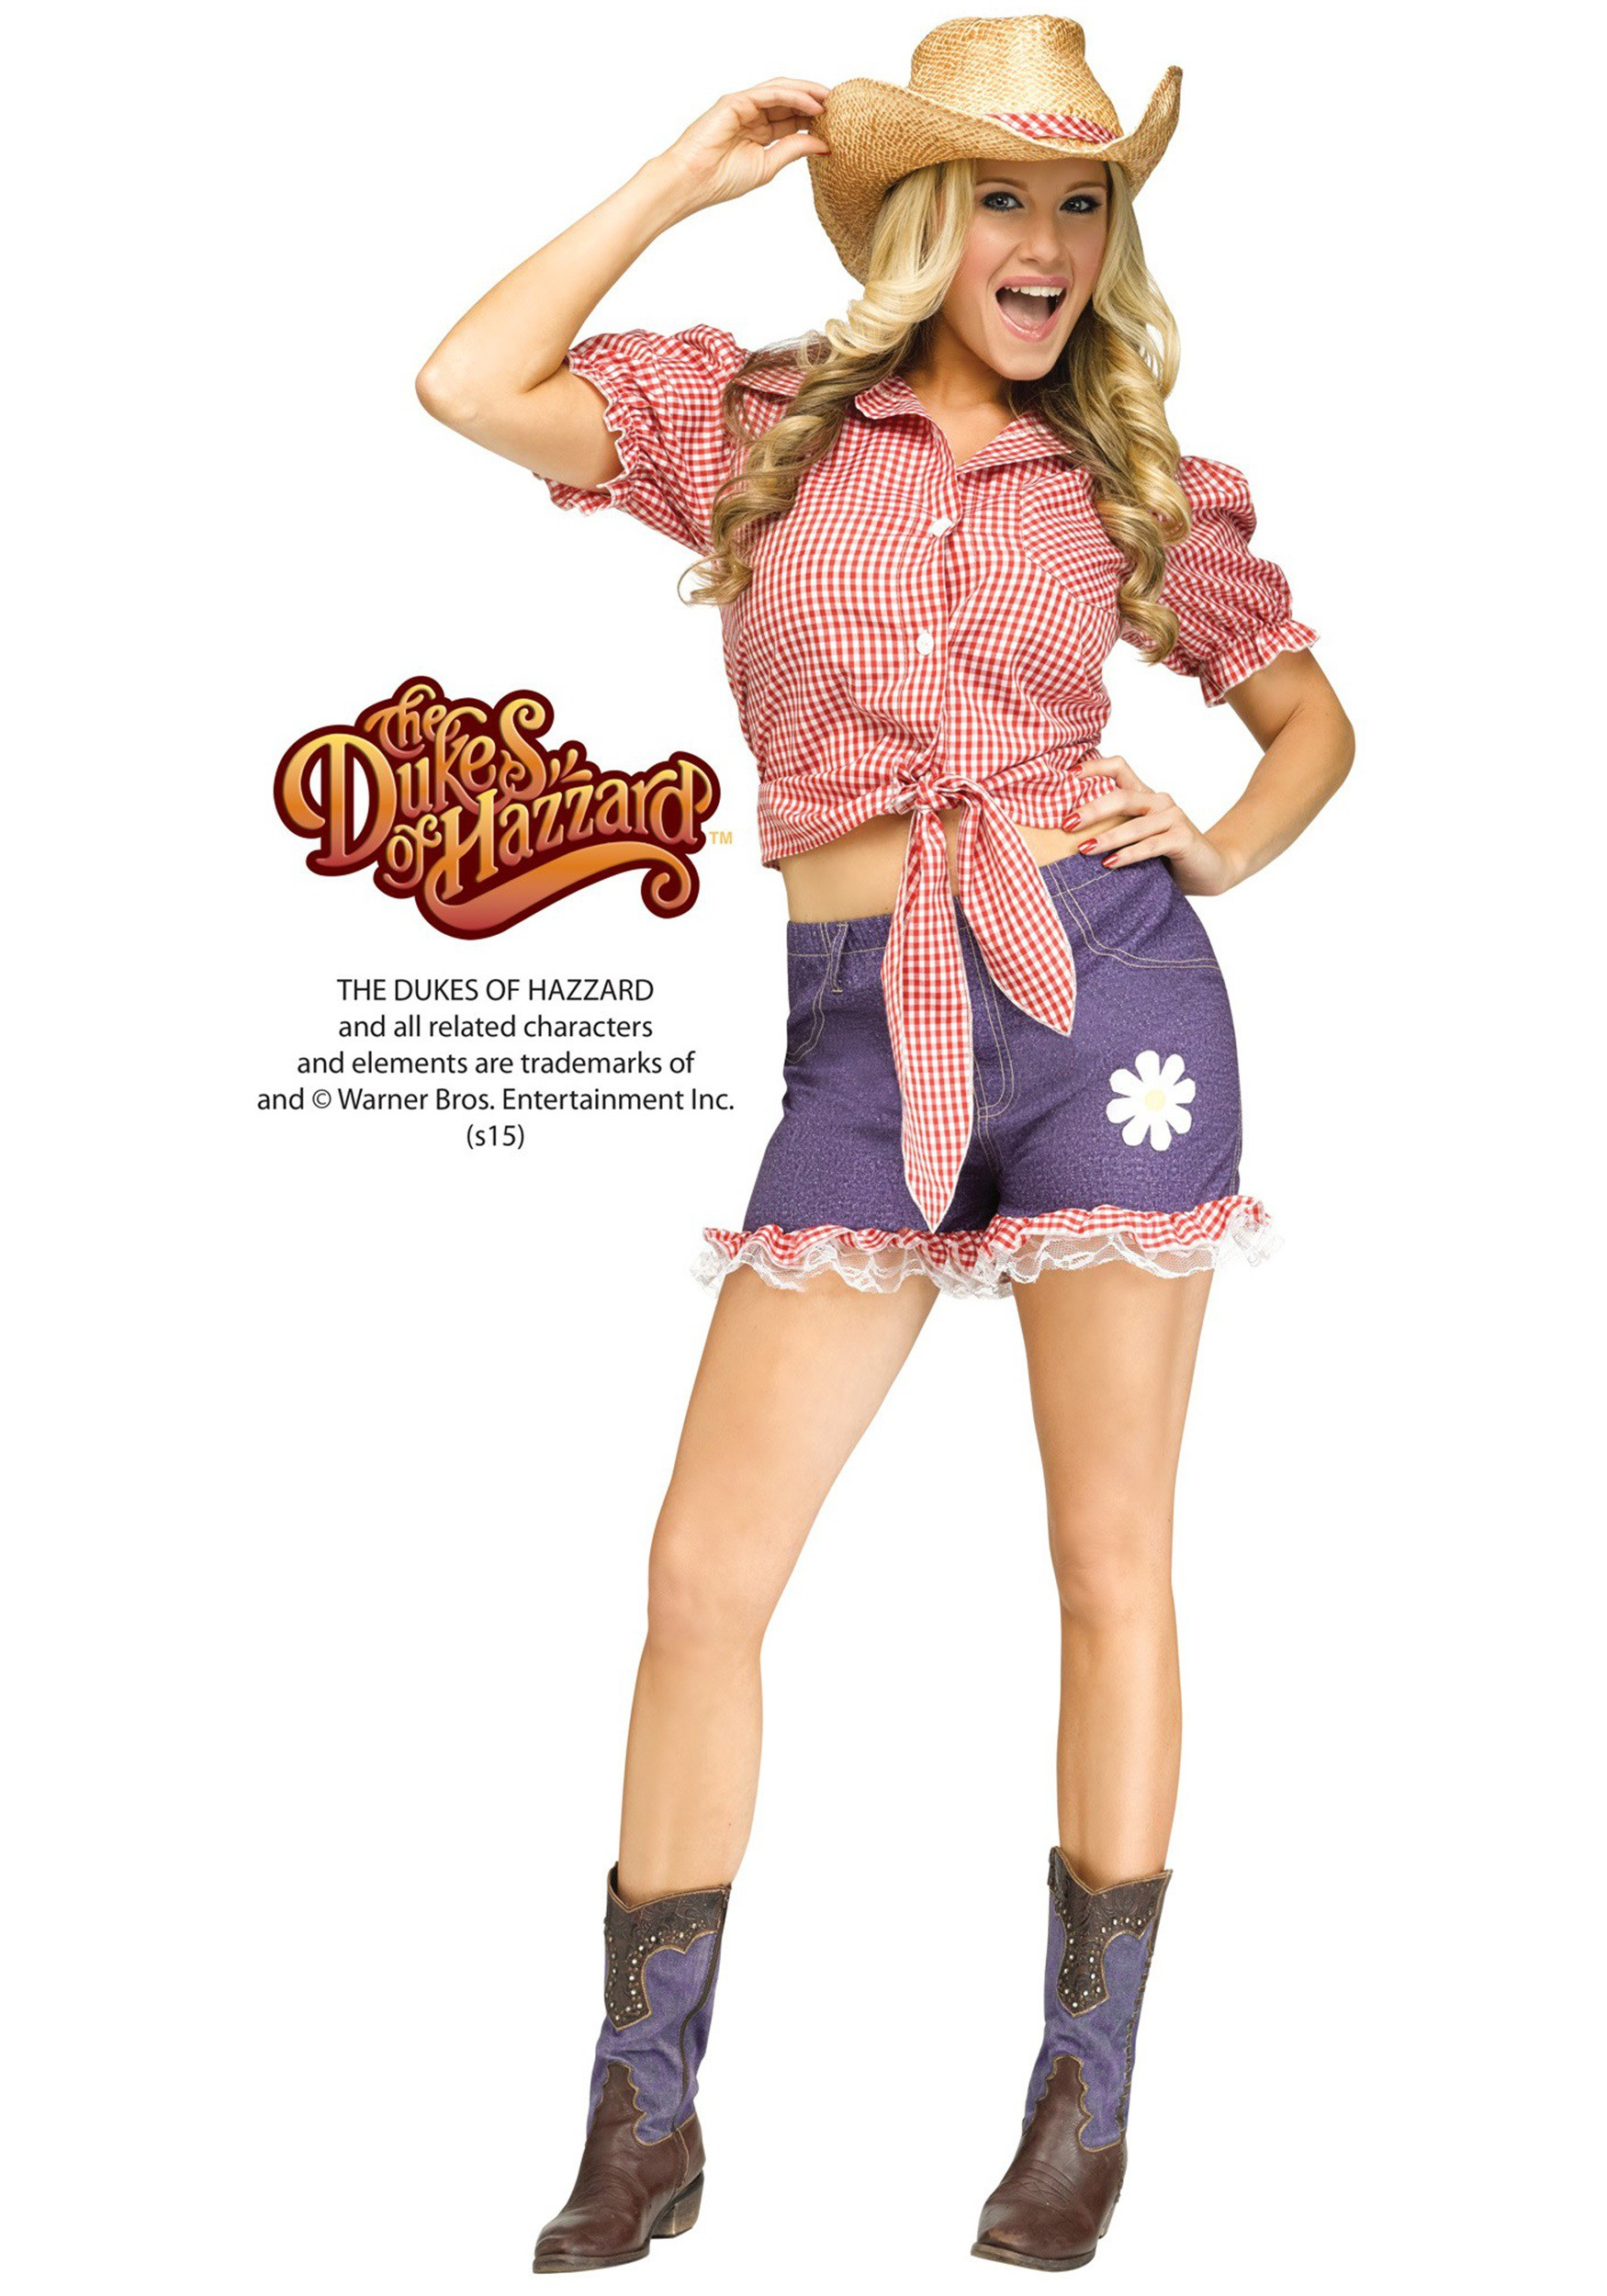 womens daisy duke costume - Daisy Dukes Halloween Costume